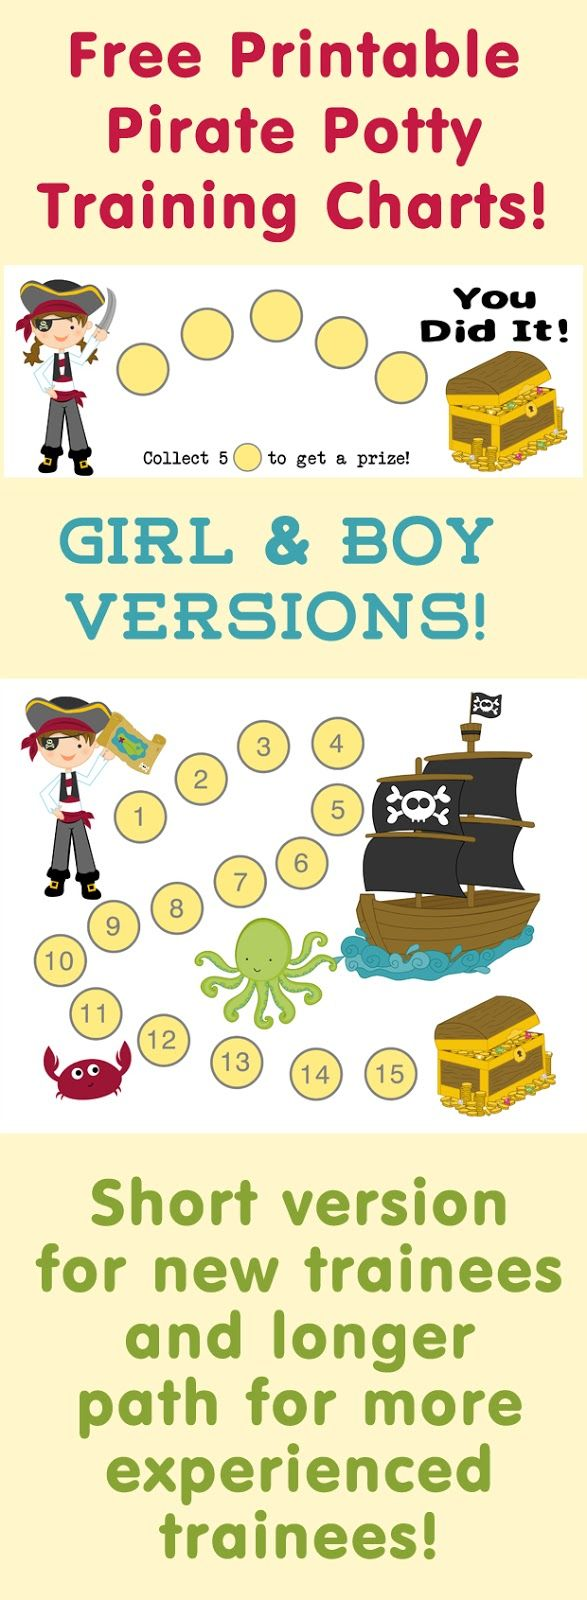 potty training chart a well circles and charts printable pirate potty training reward charts both boy and girl versions as well as